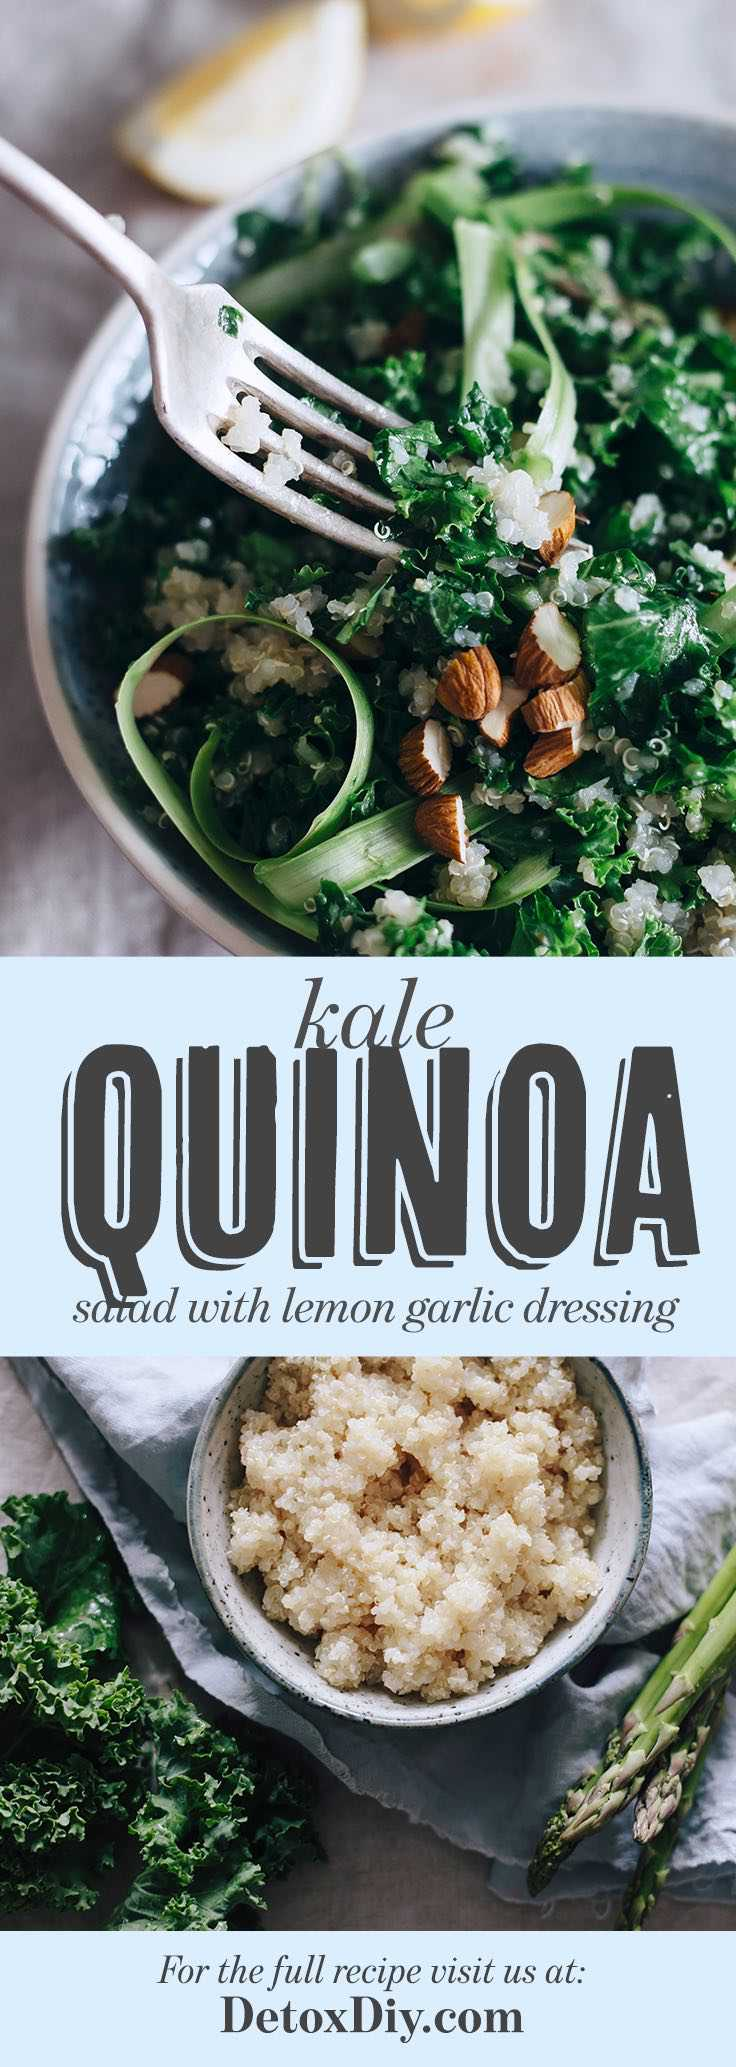 The Best Kale Quinoa Salad with Lemon Garlic Dressing